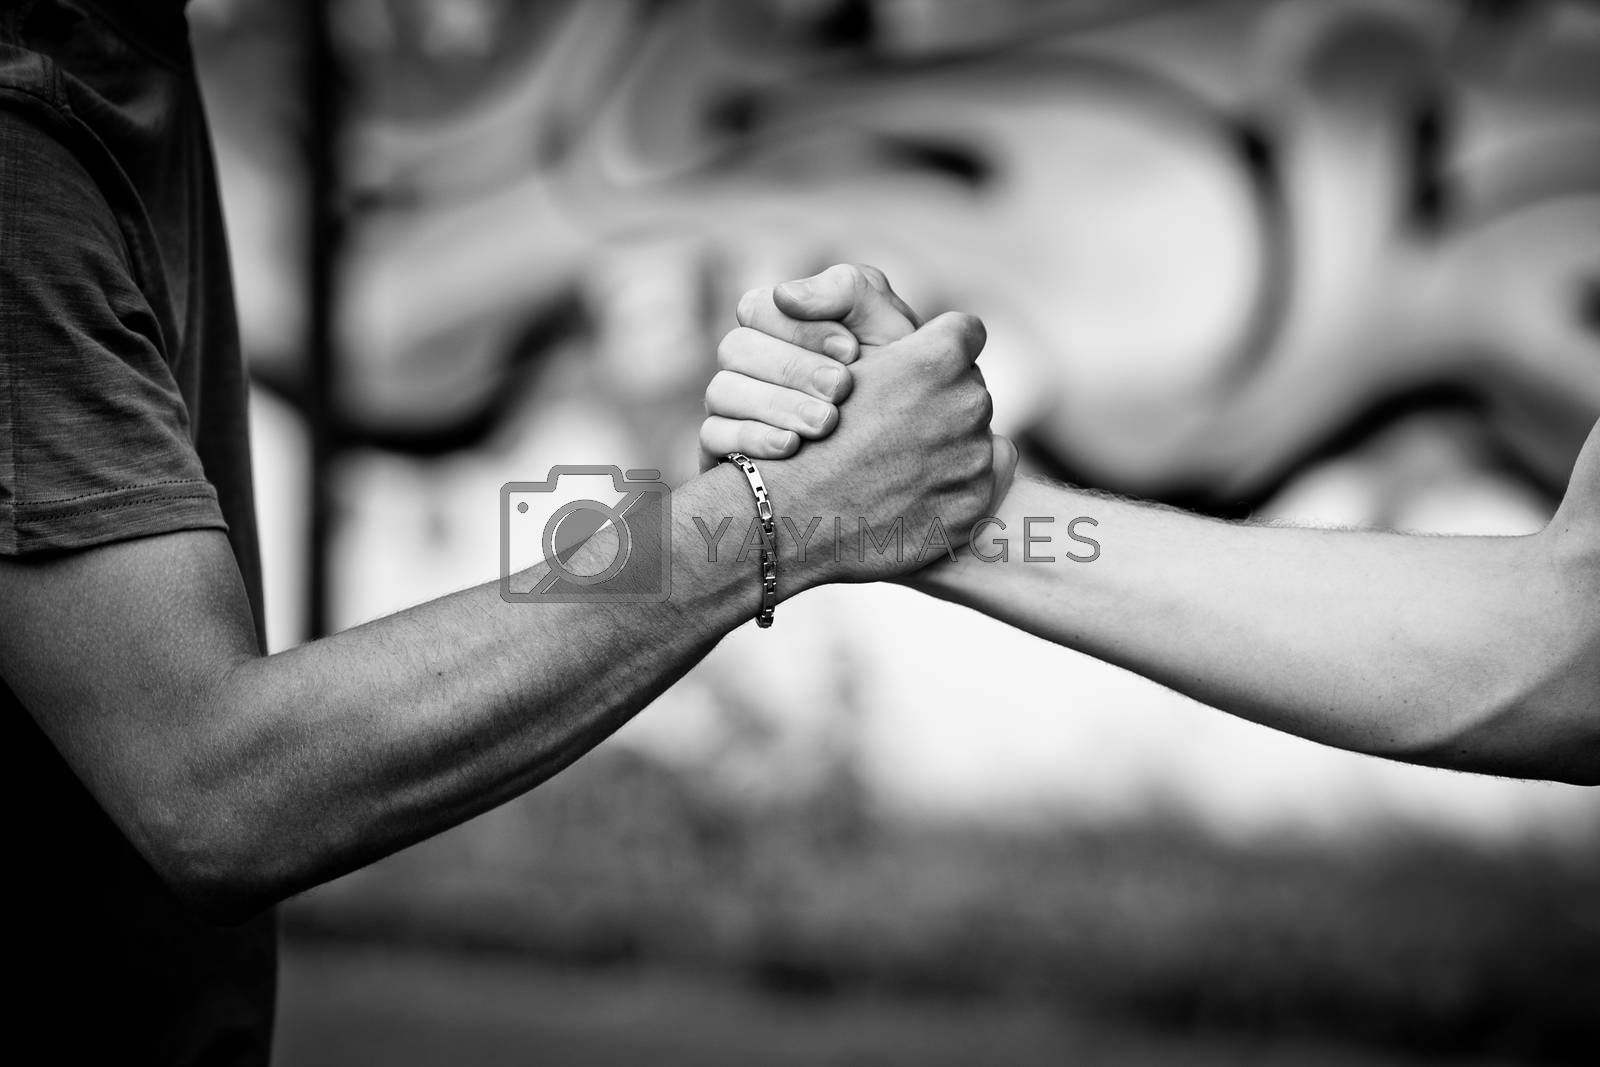 White teen and Black teen clasp hands against a wall with graffiti